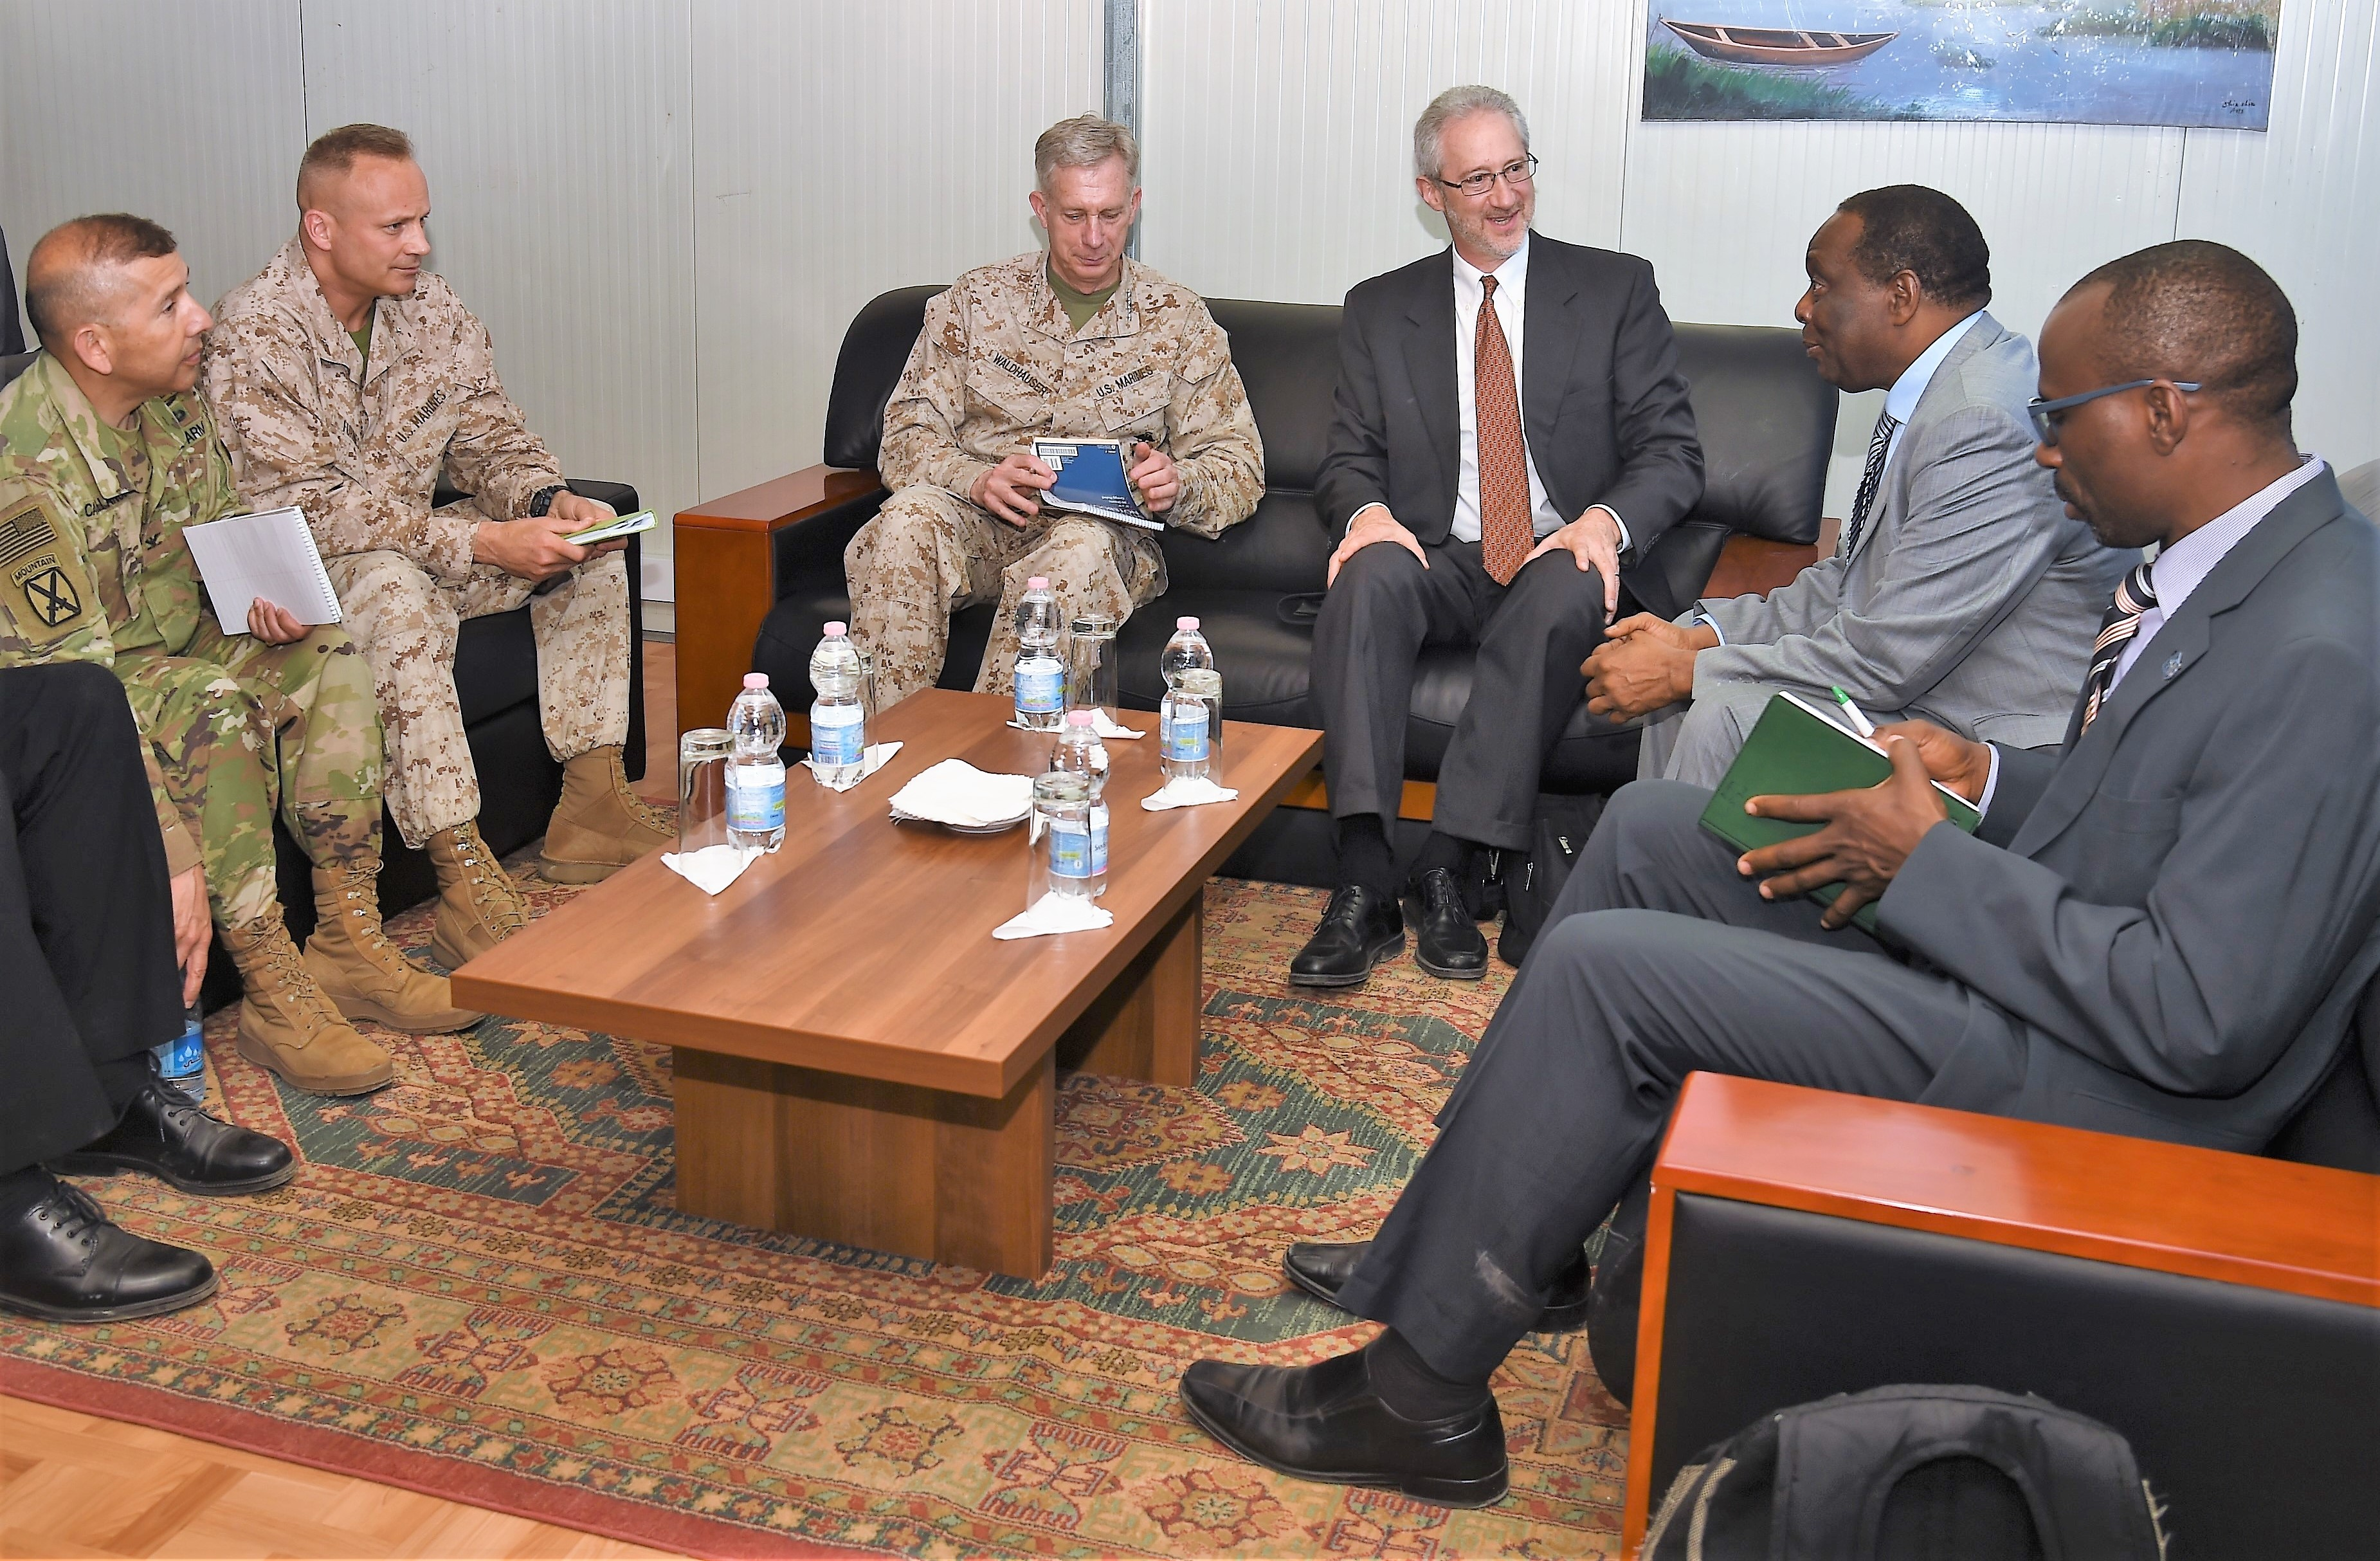 U.S. Africa Command commander U.S. Marine Corps Gen. Thomas D. Waldhauser, and the U.S. Ambassador to Somalia Stephen Schwartz, center, meet with the Special Representative of the Chairperson of the African Union Commission for Somalia Ambassador Francisco Caetano Jose Madeira at Mogadishu International Airport, Somalia, April 29, 2017. Waldhauser has stated that the U.S. and its African partners should bring forward creative and viable solutions to meet the complicated and diverse challenges facing the African continent. (U.S. Air National Guard photo by Tech. Sgt. Andria Allmond/Released)